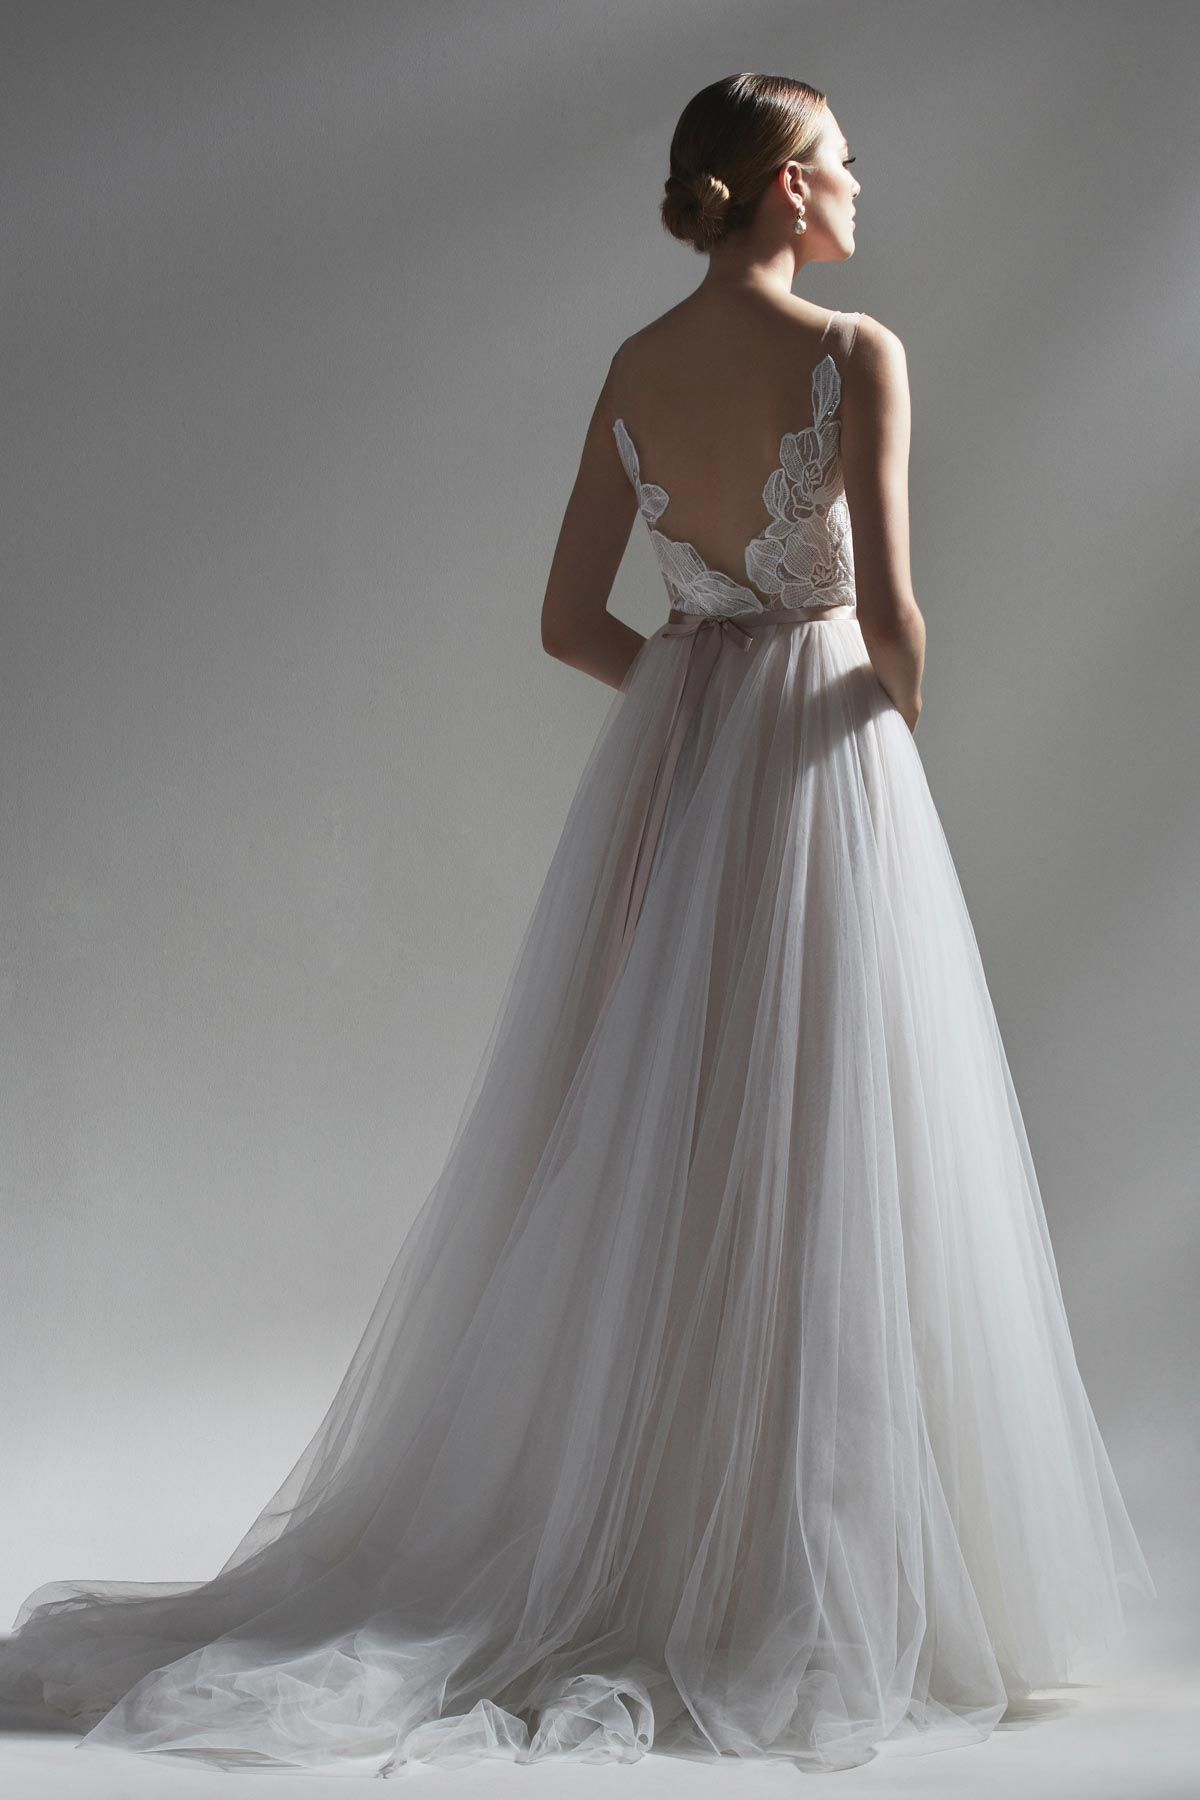 Vervain By Watters 2019 Watters Collection The Sun Was Shining On The Sea Collection Somethin Watters Wedding Dress Strappy Wedding Dress Wedding Dresses